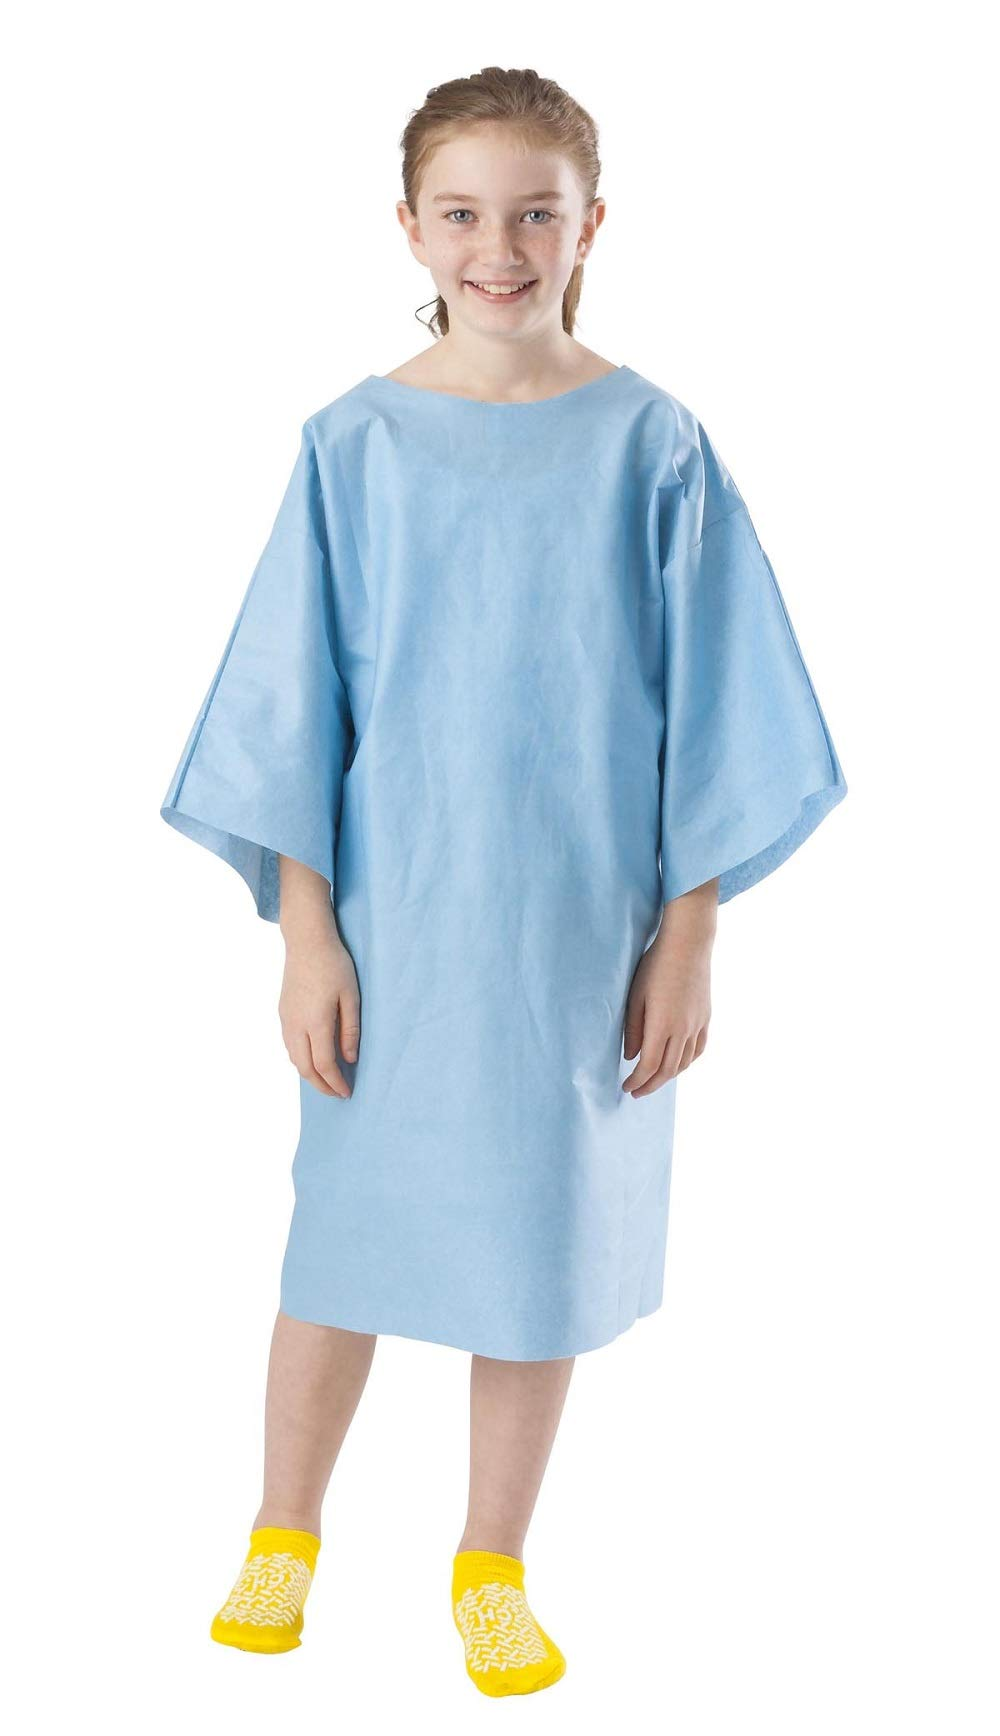 APQ Pack of 100 Disposable Exam Gowns, Pediatric, Multi-Layer, 9-12 years, Blue Patient Care Sleeveless Non Sterile Latex Free Clinics, Surgery, Lab Procedures. Single Use Multifunctional Wholesale